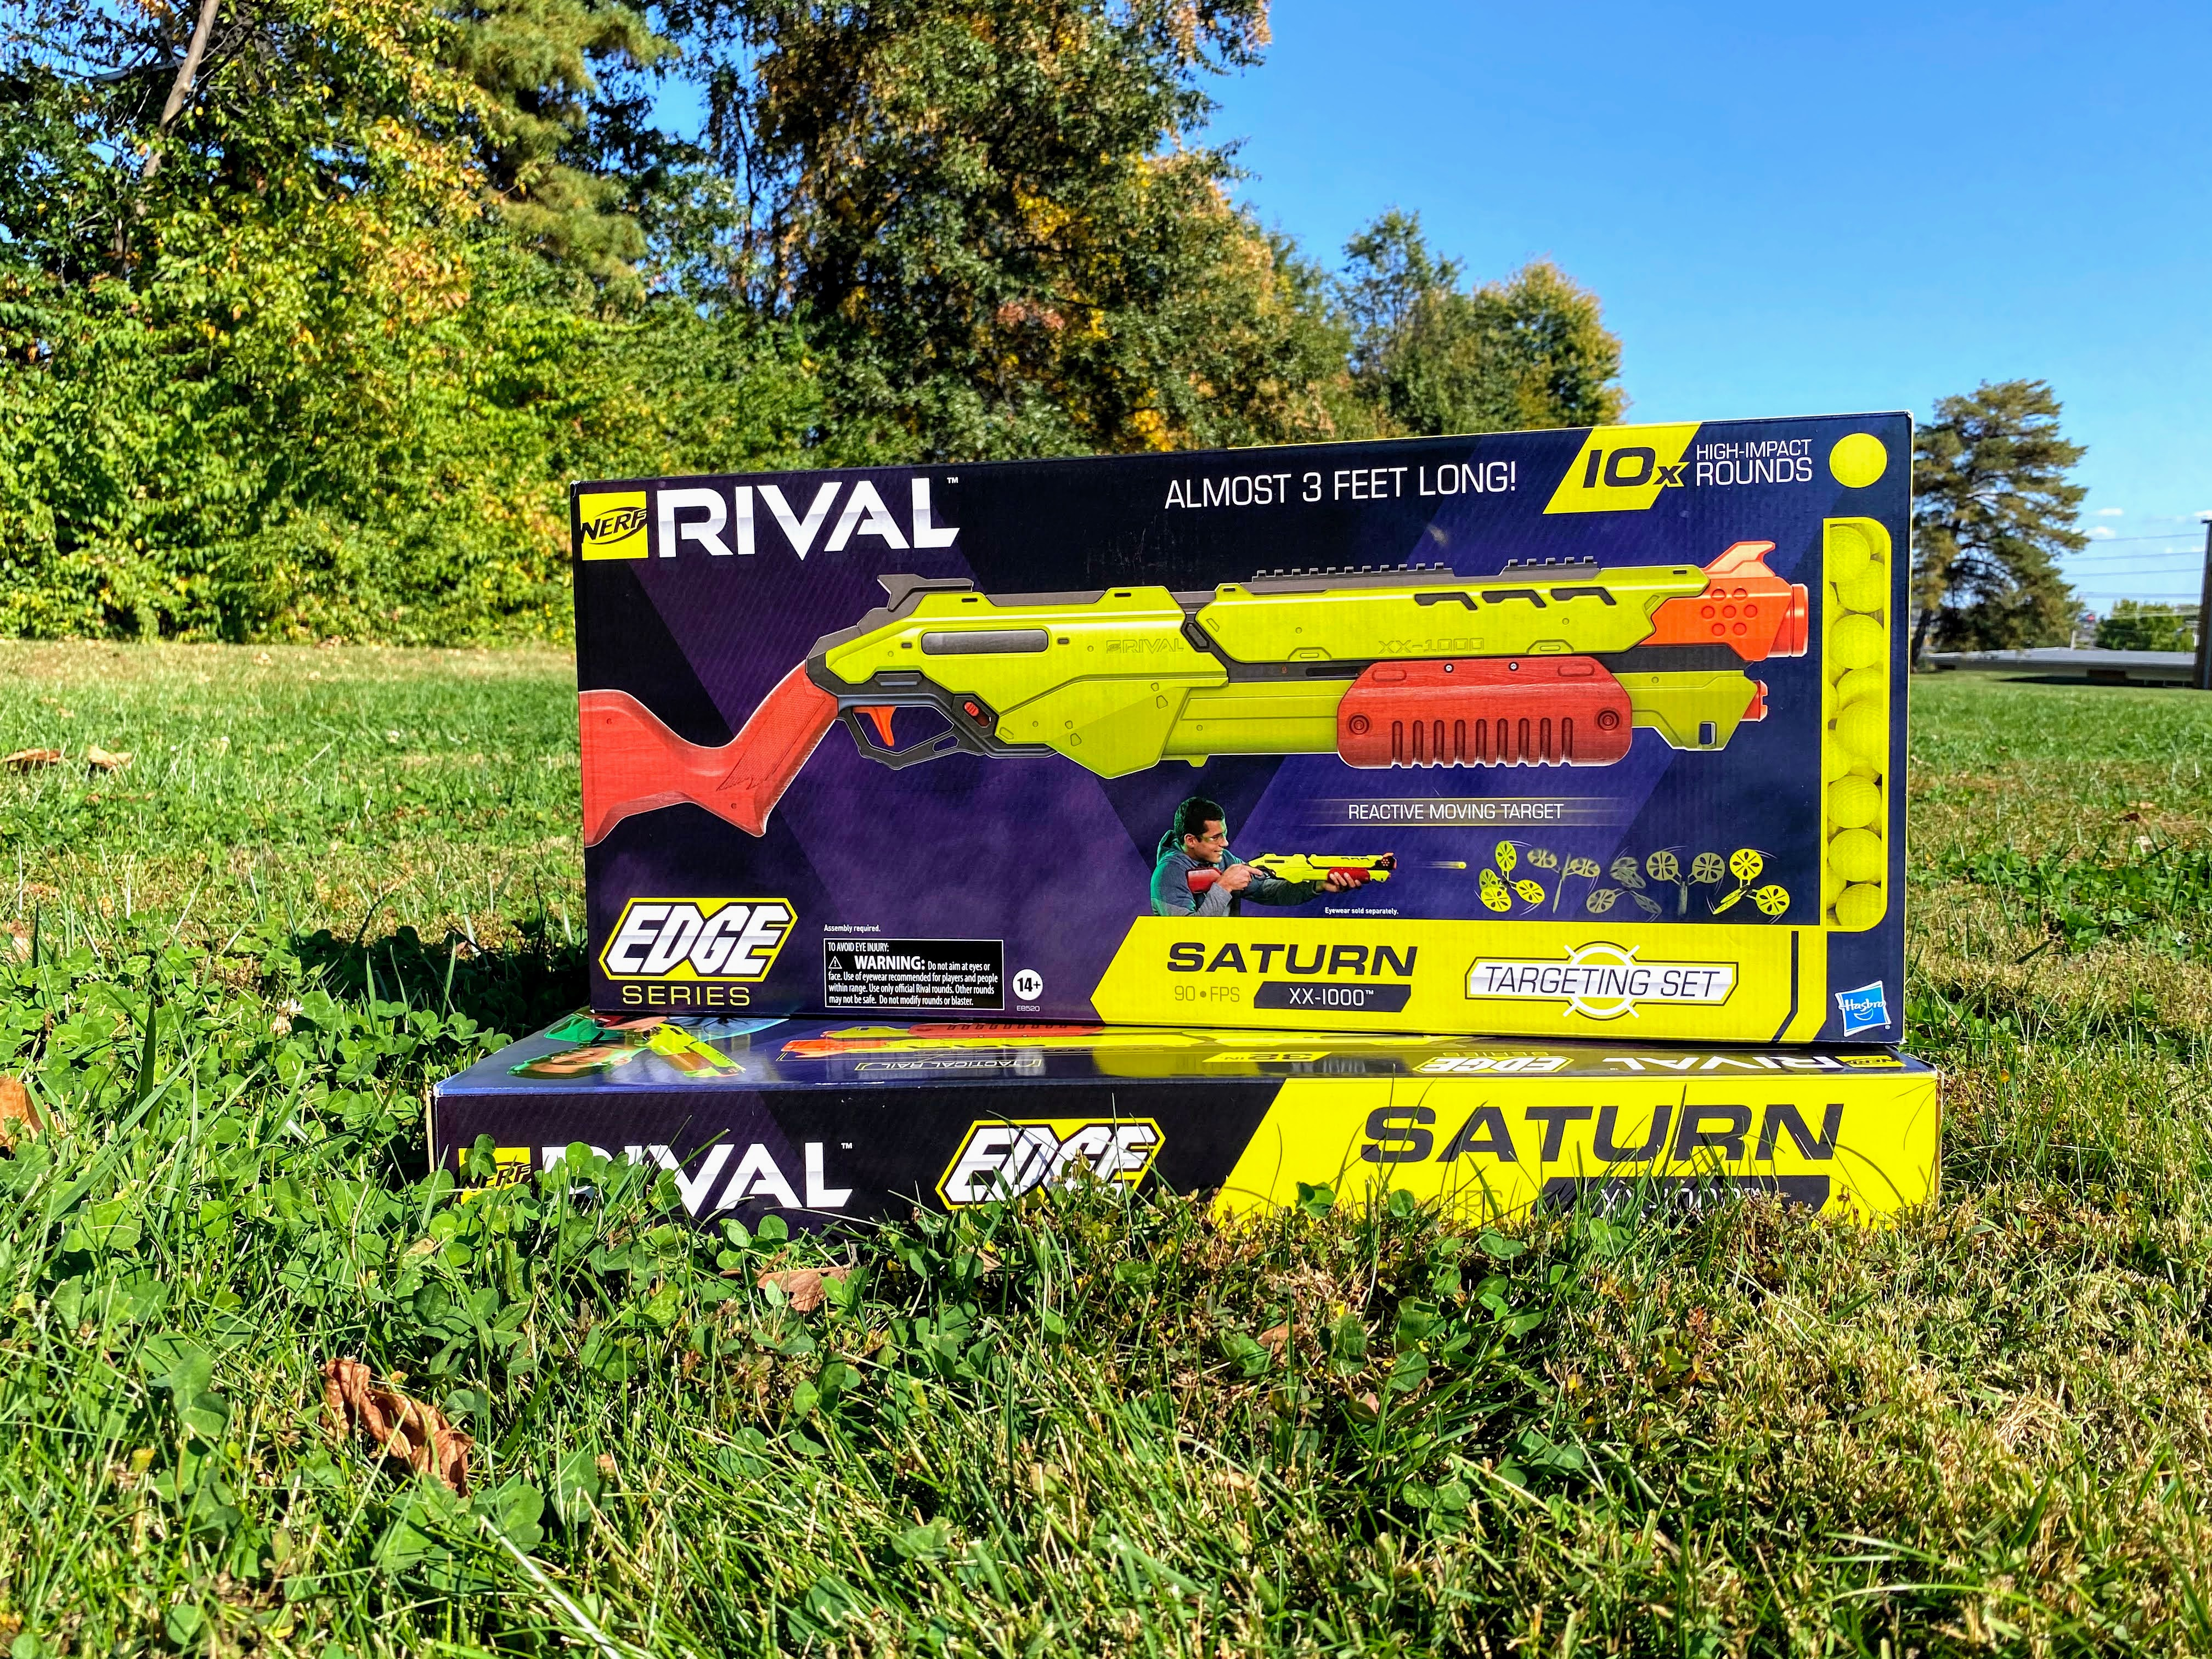 #ad Get your teens off the couch & having fun too with the Nerf Rival Edge Series Saturn XX-1000 Targeting Sets! Experience the Intensity by challenging opponents to competitive games of skill and accuracy with an air-scorching velocity of up to 90 feet per second from the longest Nerf Rival blaster ever at 32 inches long!  @nerf #Nerf #OnlyatWalmart #NerfRivalEdgeSeries